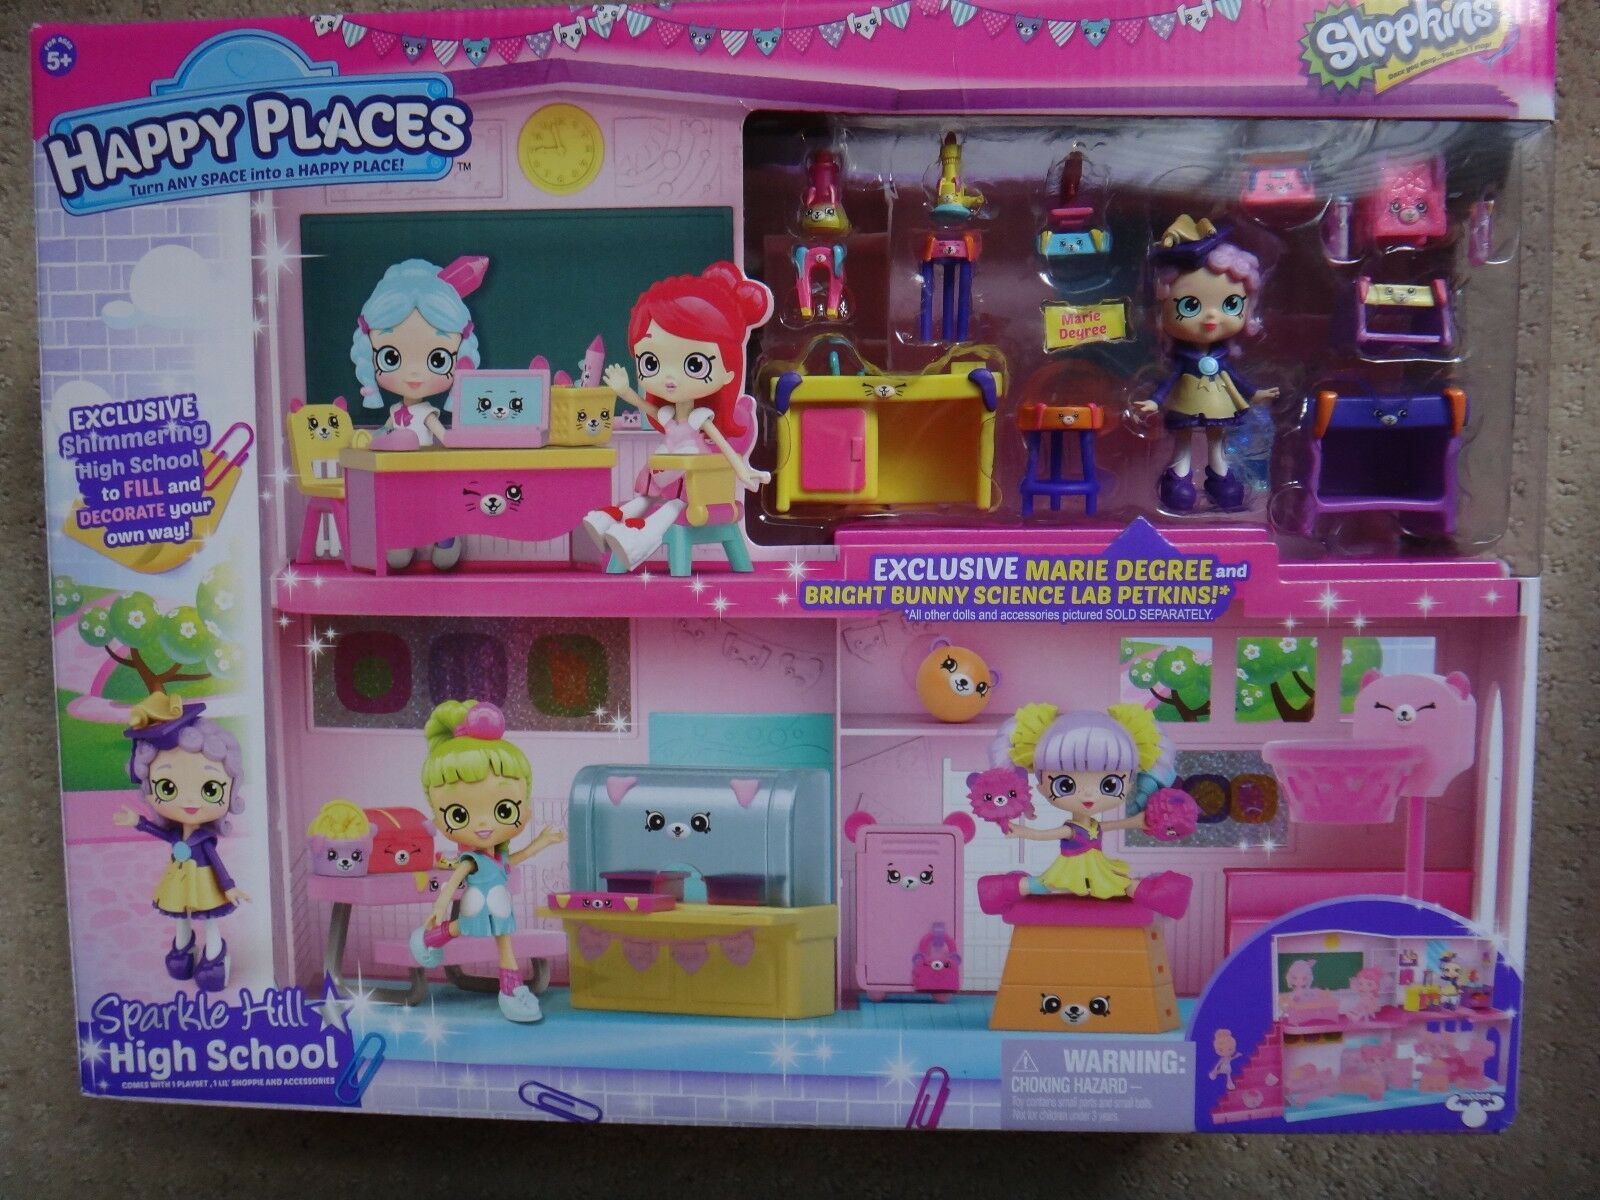 Shopkins Happy Places Sparkle Hill High School Exclusive Marie Degree Girls NEW